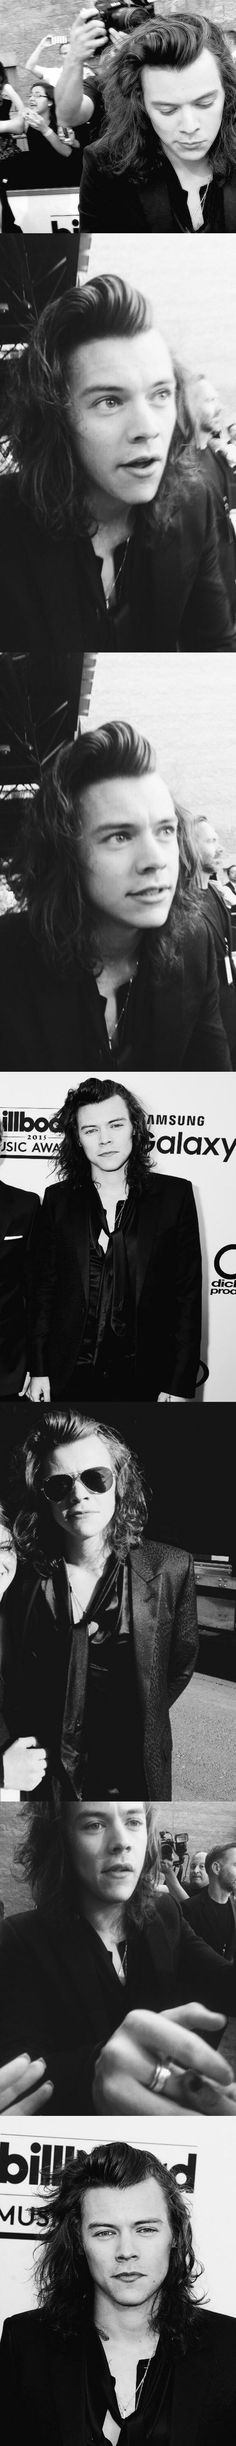 HAPPY 22ND BIRTHDAY HARRY! I LOVE YOU SO MUCH BABE! ❤❤❤❤❤ pinterest↠@Sweetthensour ❁